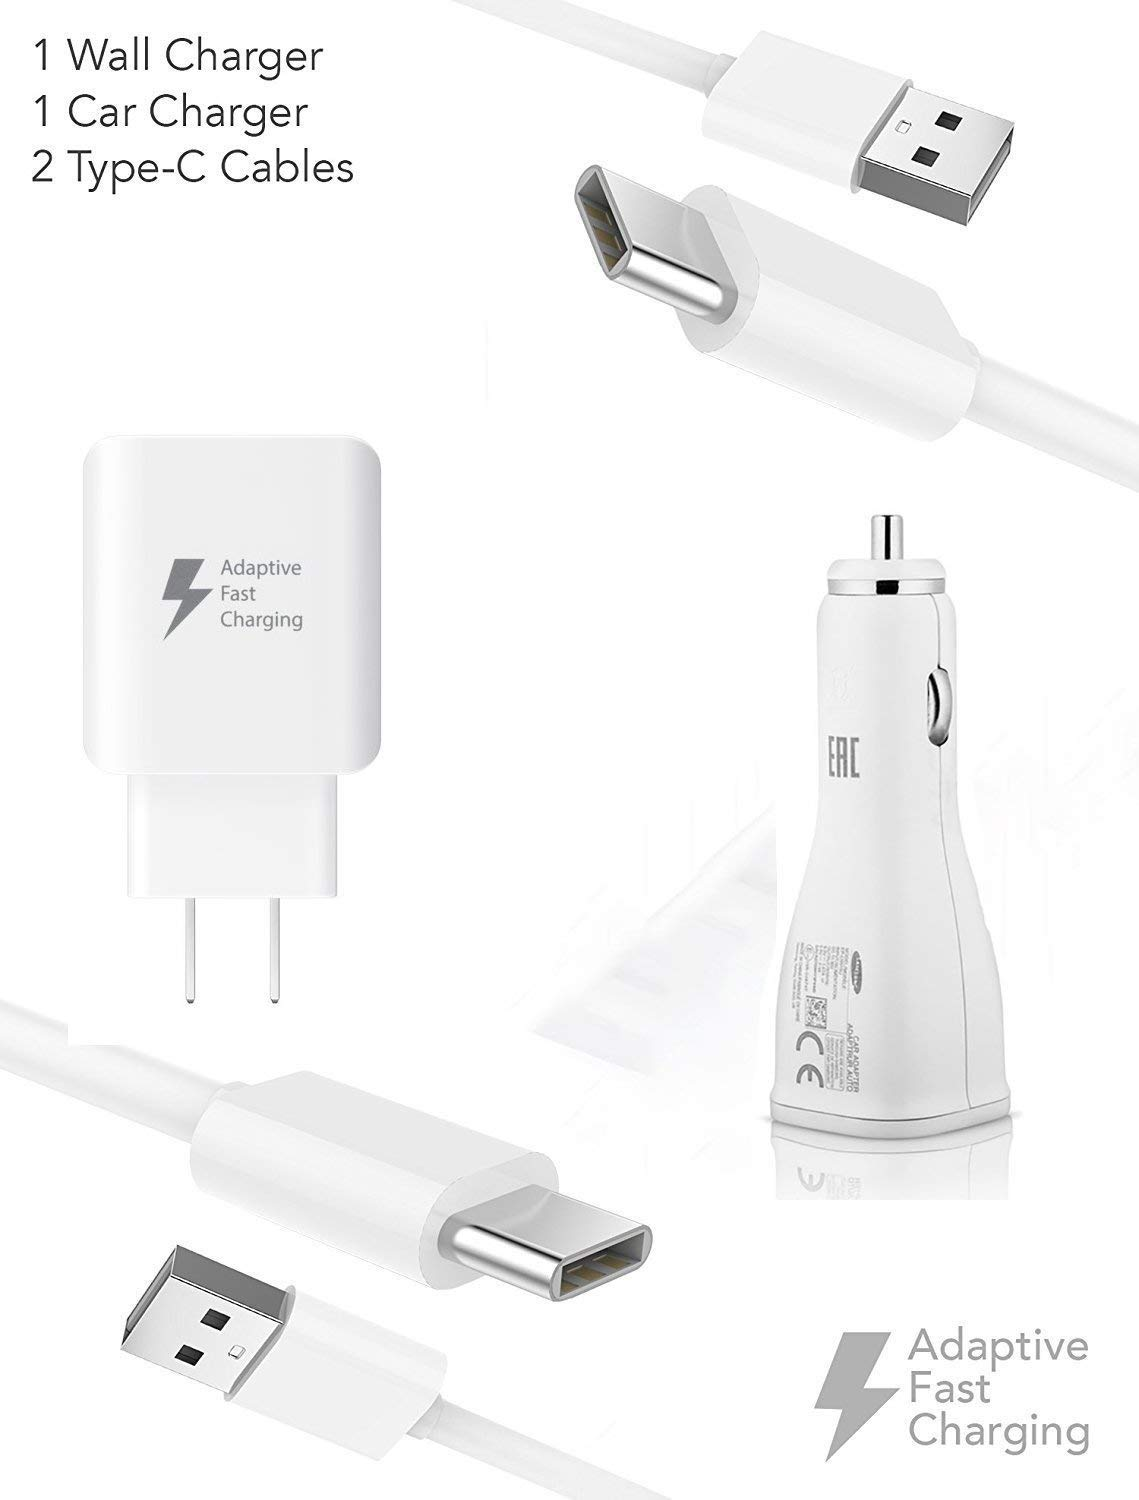 Quick Adaptive Turbo 18W Wall & Car Dual-Port USB Kit Works for Oppo Find X with (2) USB Type-C Cables!